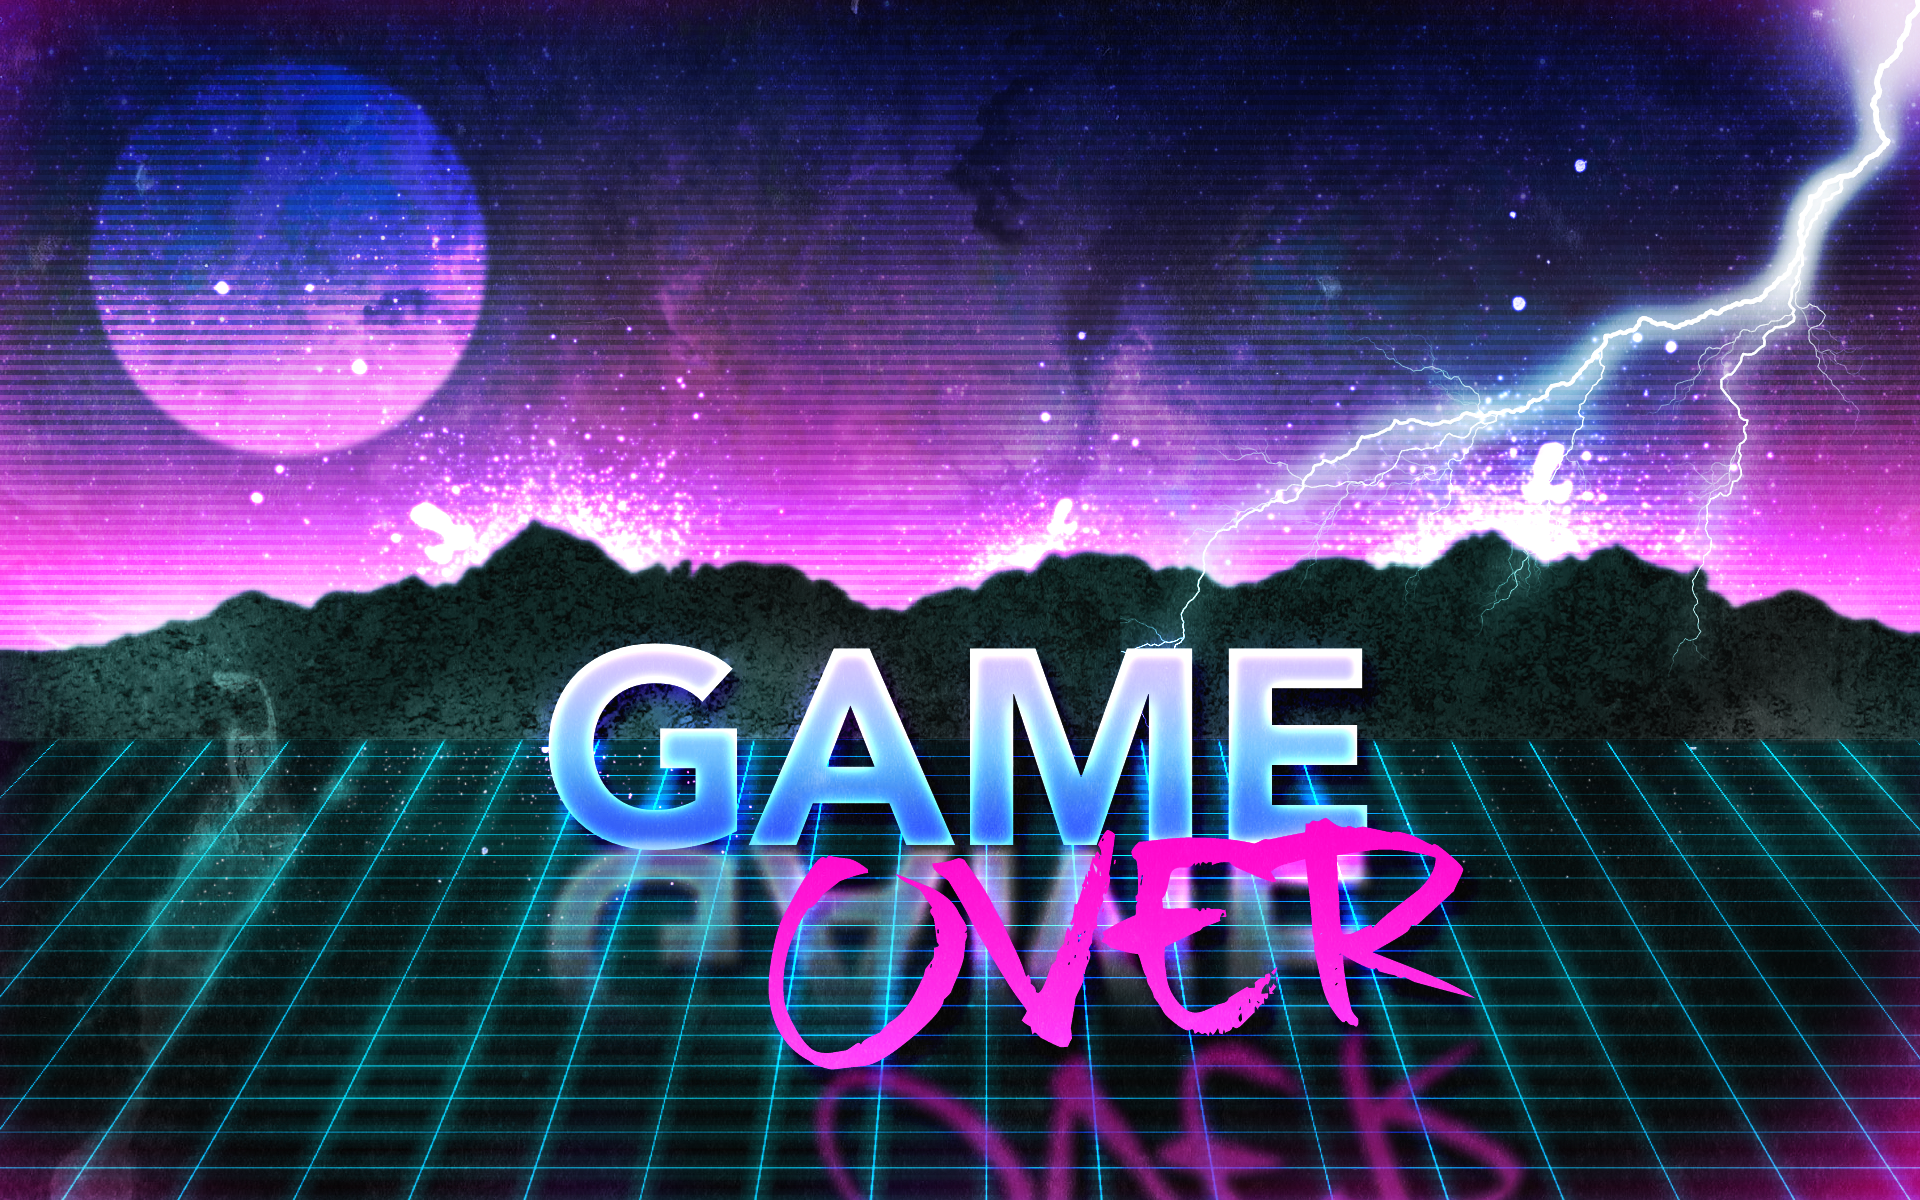 80s Retro Game Over Wallpaper By Leepiin On Deviantart HD Wallpapers Download Free Images Wallpaper [1000image.com]